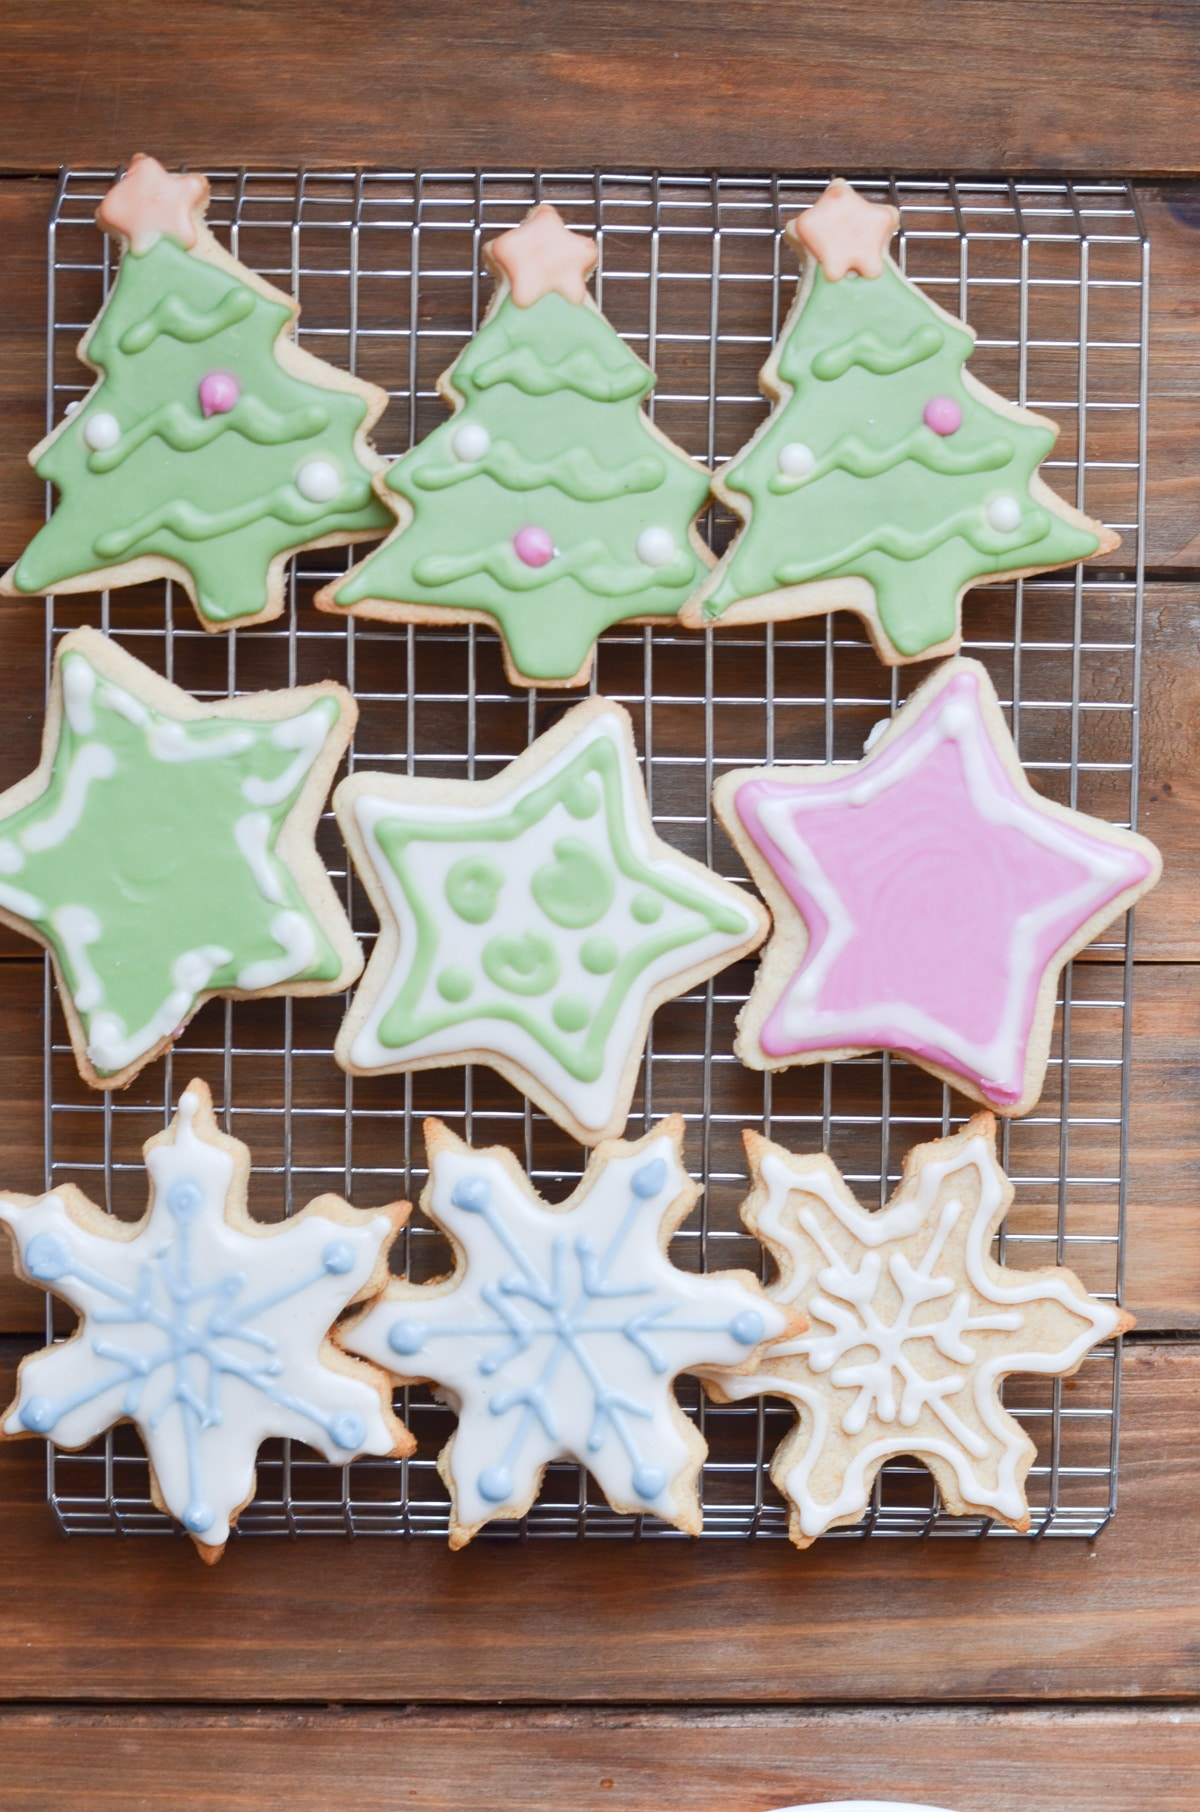 vegan sugar cookies decorated on cooling rack.